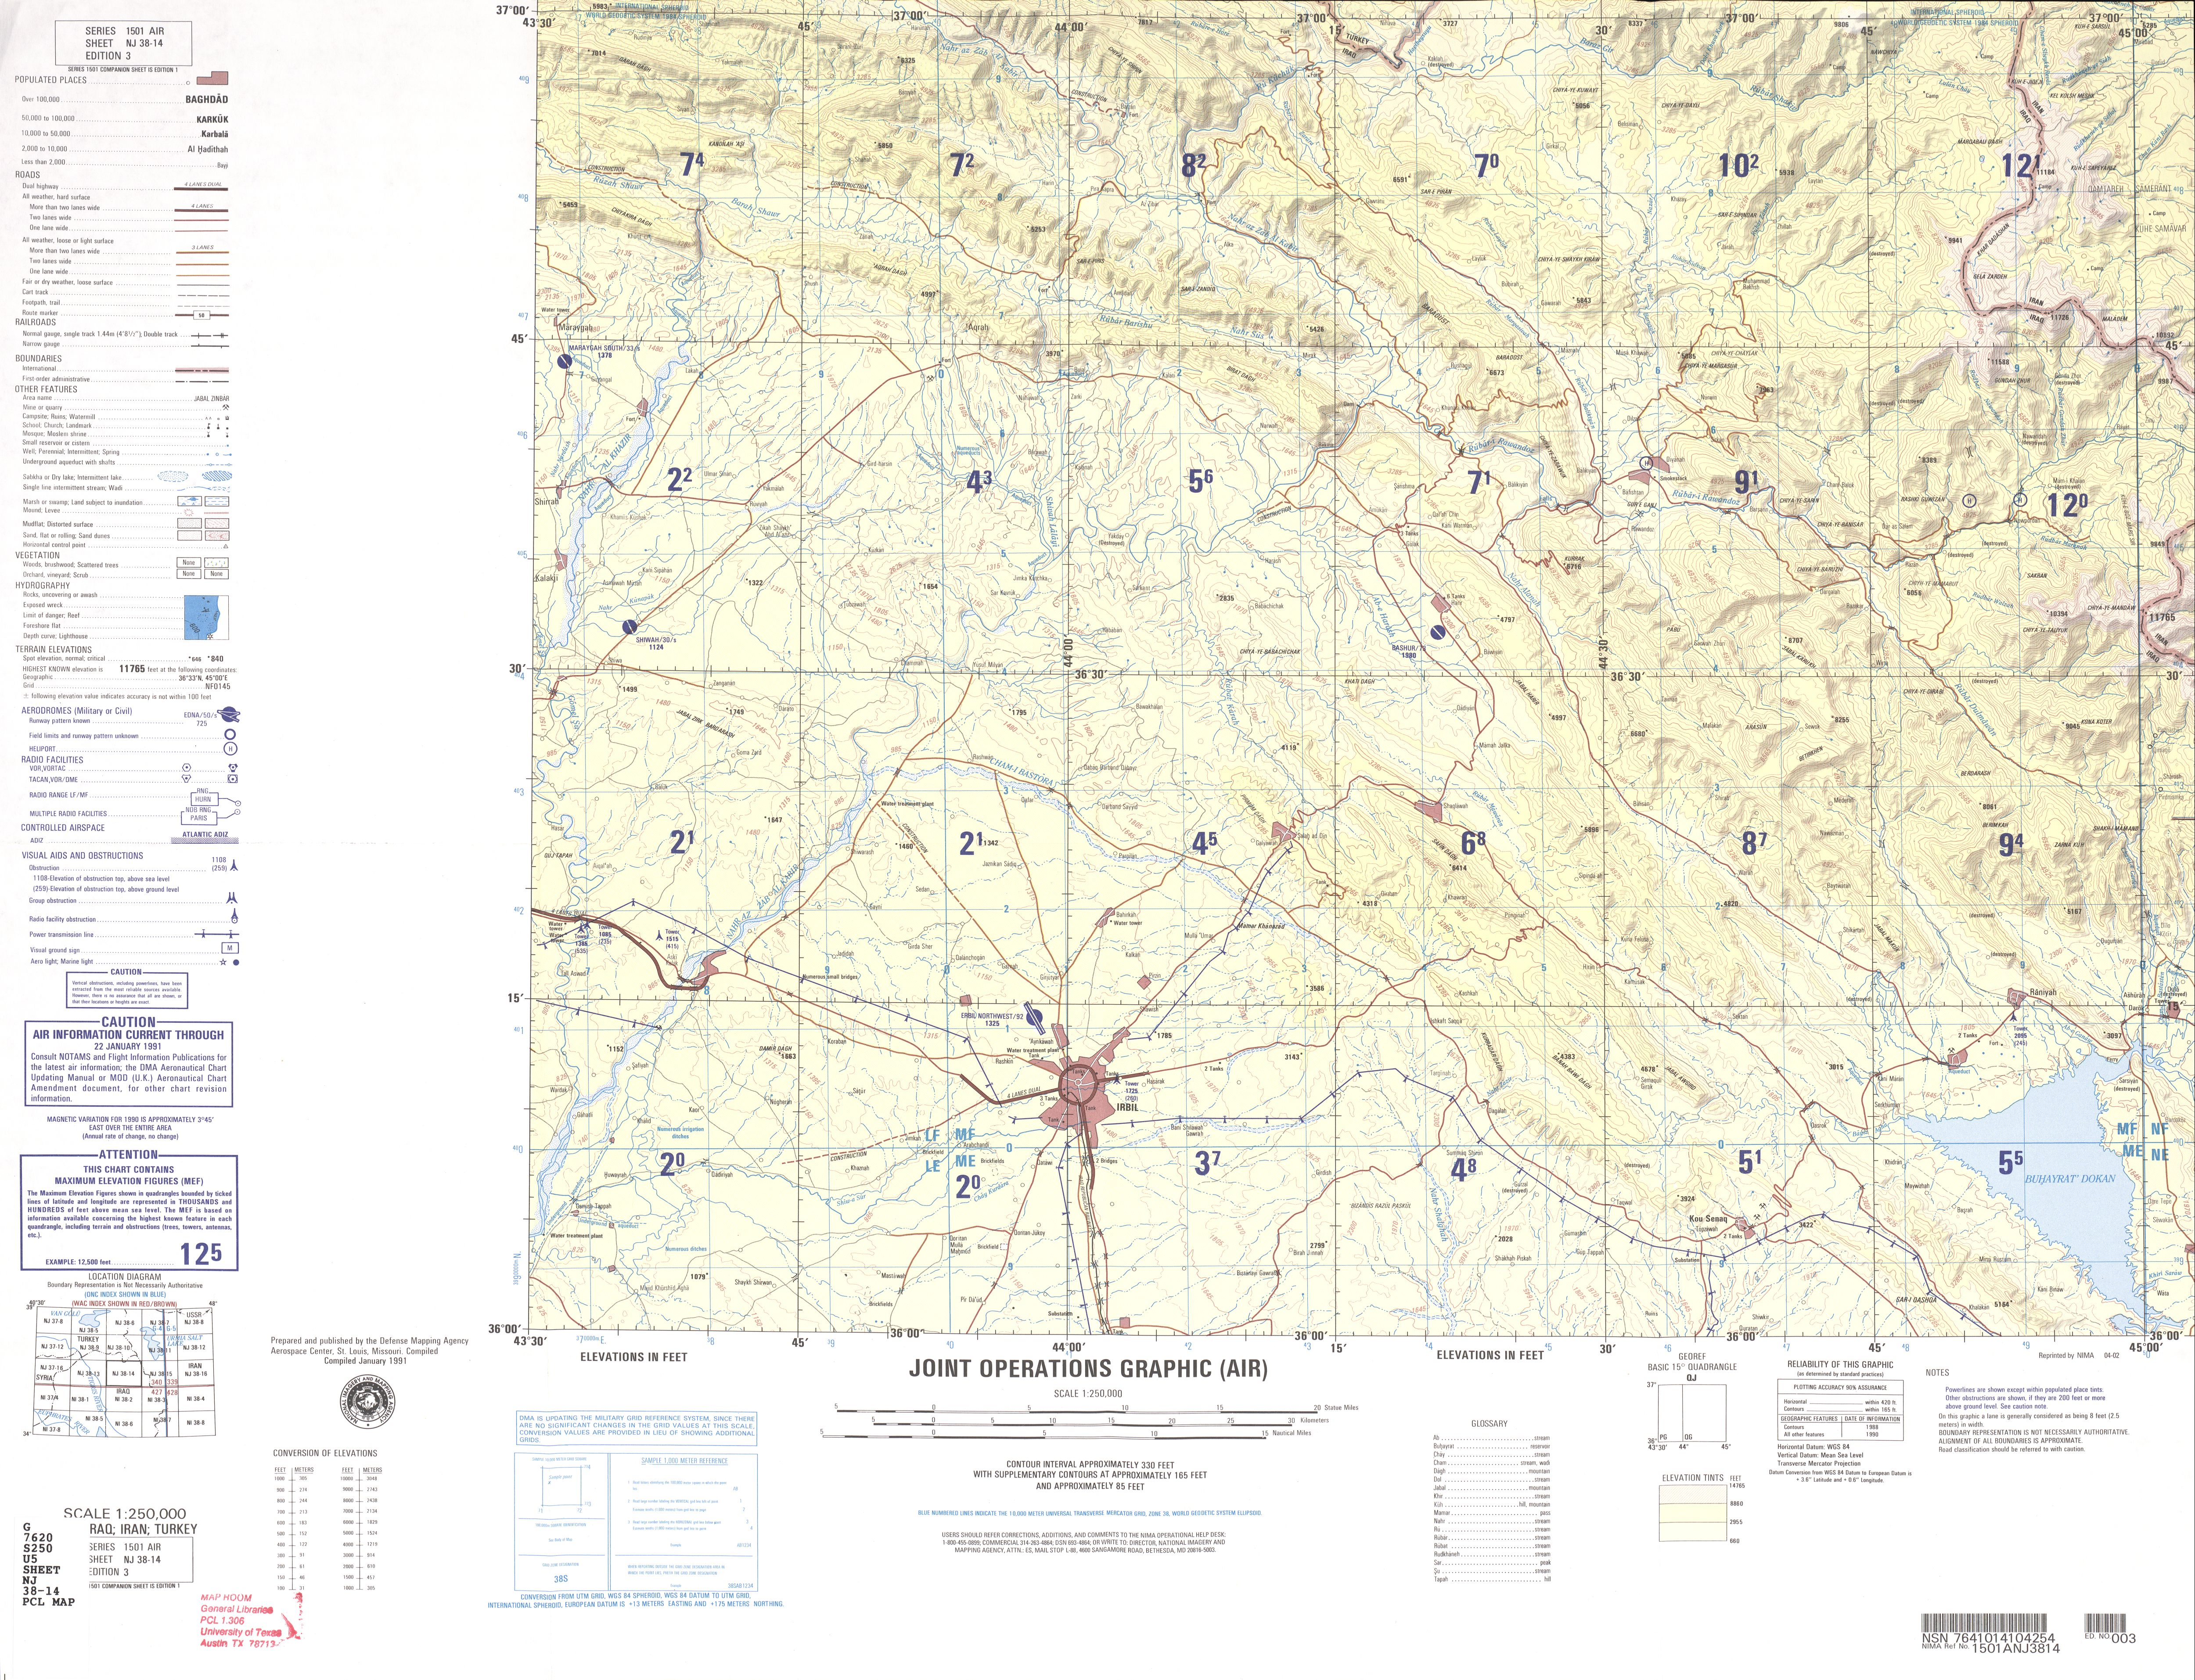 Irbil Region Joint Operations Graphic Original Scale 1 250 000 Defense Mapping Agency Series 1501